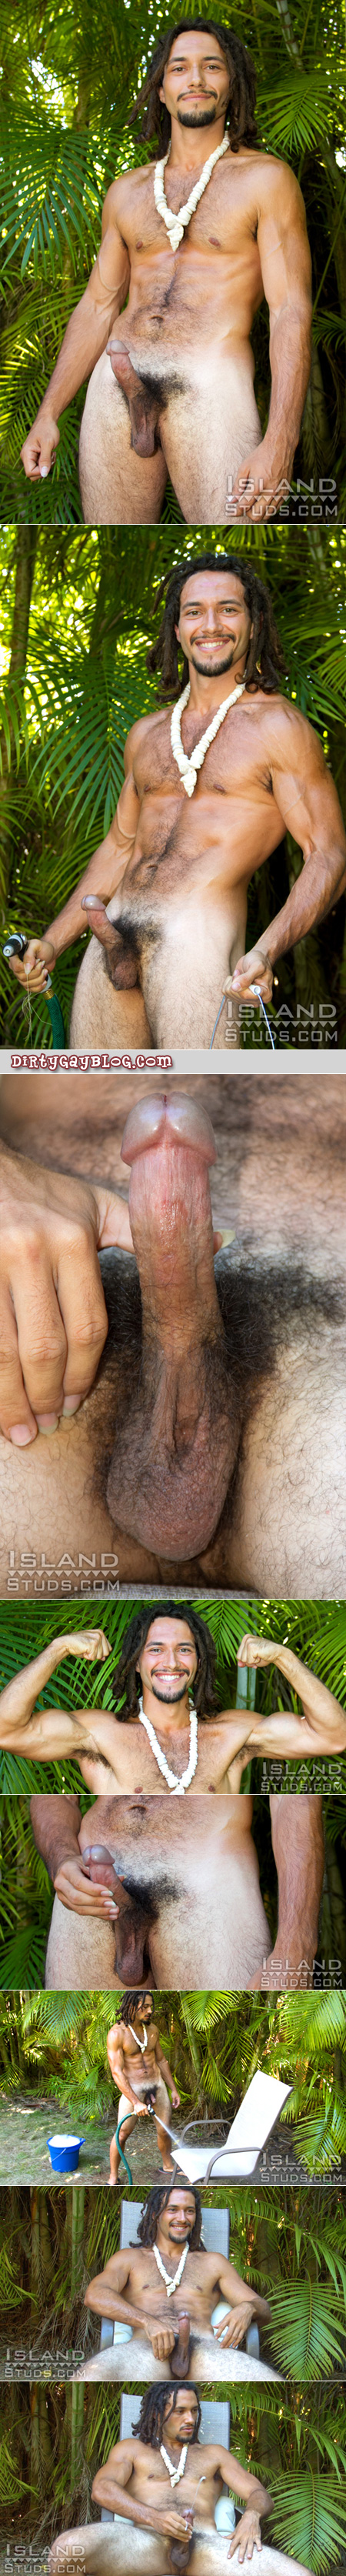 Veiny, muscular, straight Hawaiian guy nude shoots a huge load out of the swollen mushroom head of his cock.